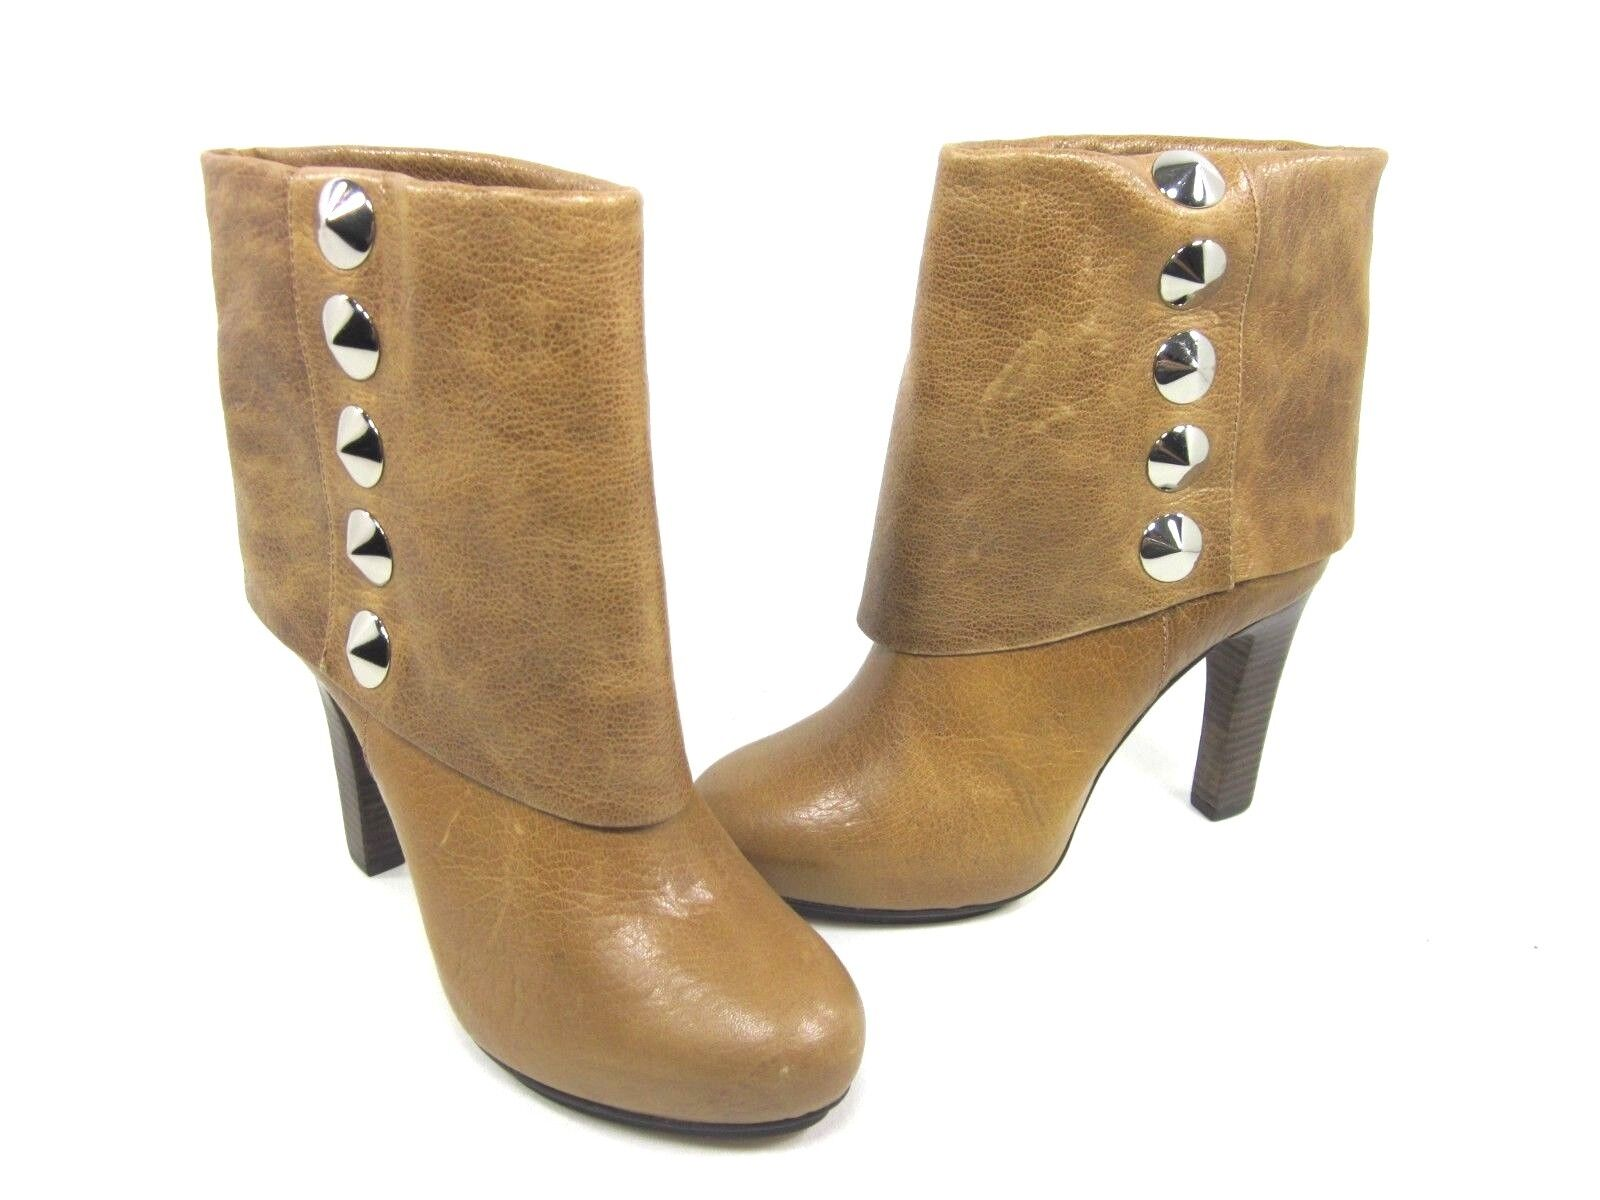 BE & D WOMEN'S LANGLEY ANKLE BOOT, COGNAC, 38 EU 8 US M, NEW  DISPLAY W O BOX